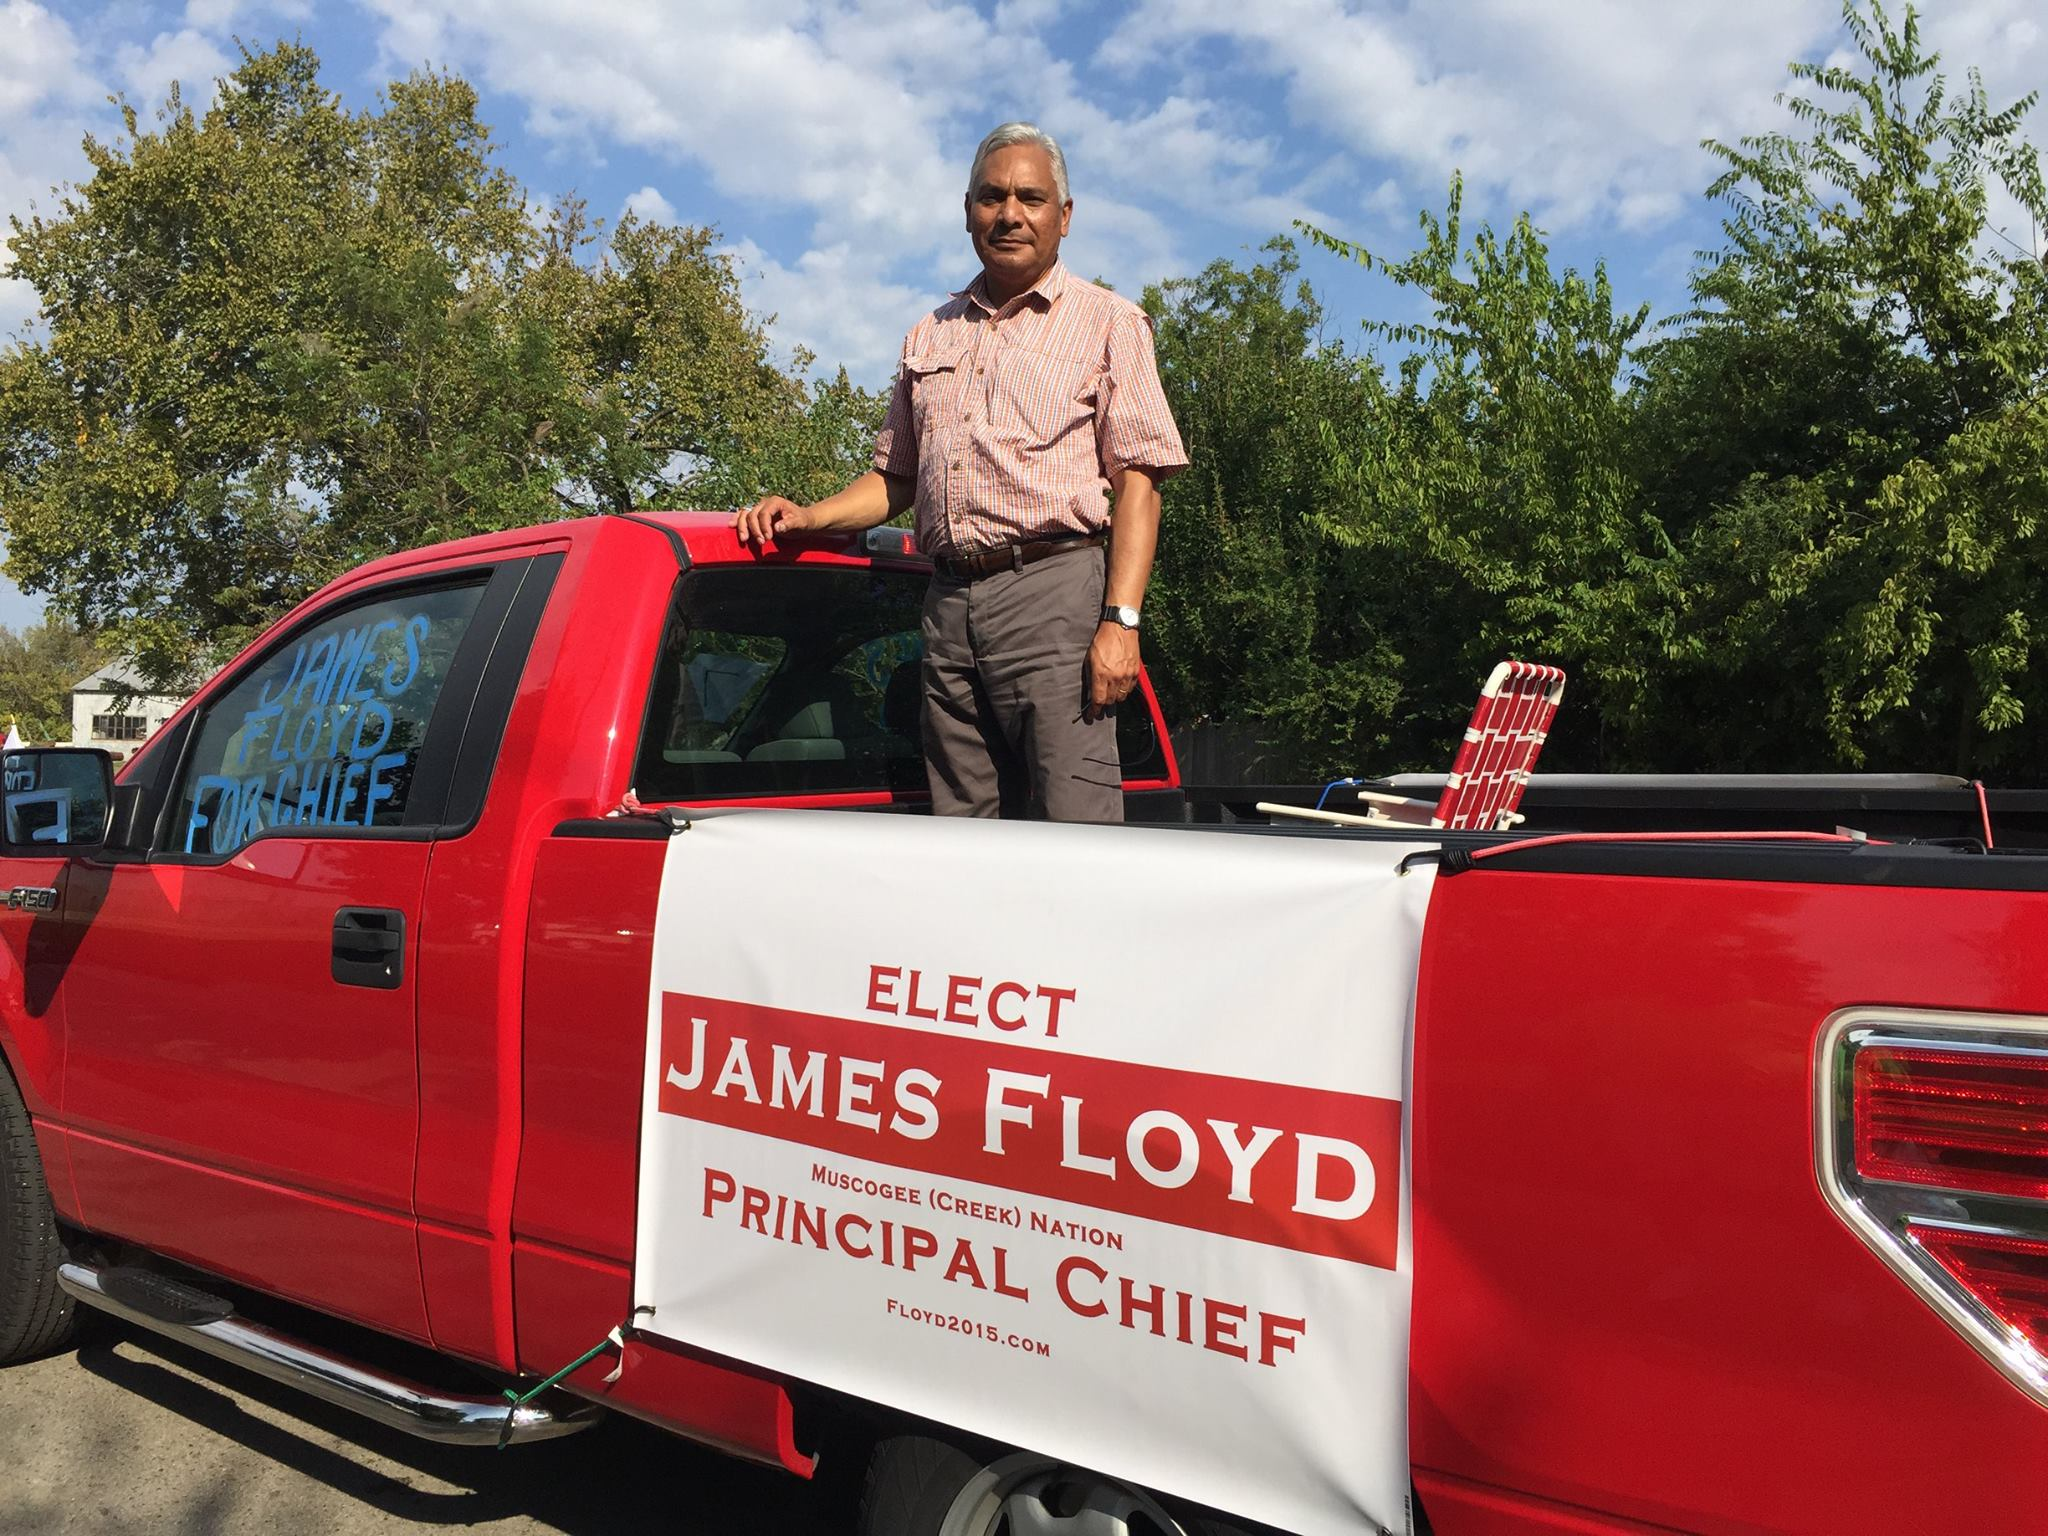 Editorial: Muscogee Nation brings on new leader in James Floyd